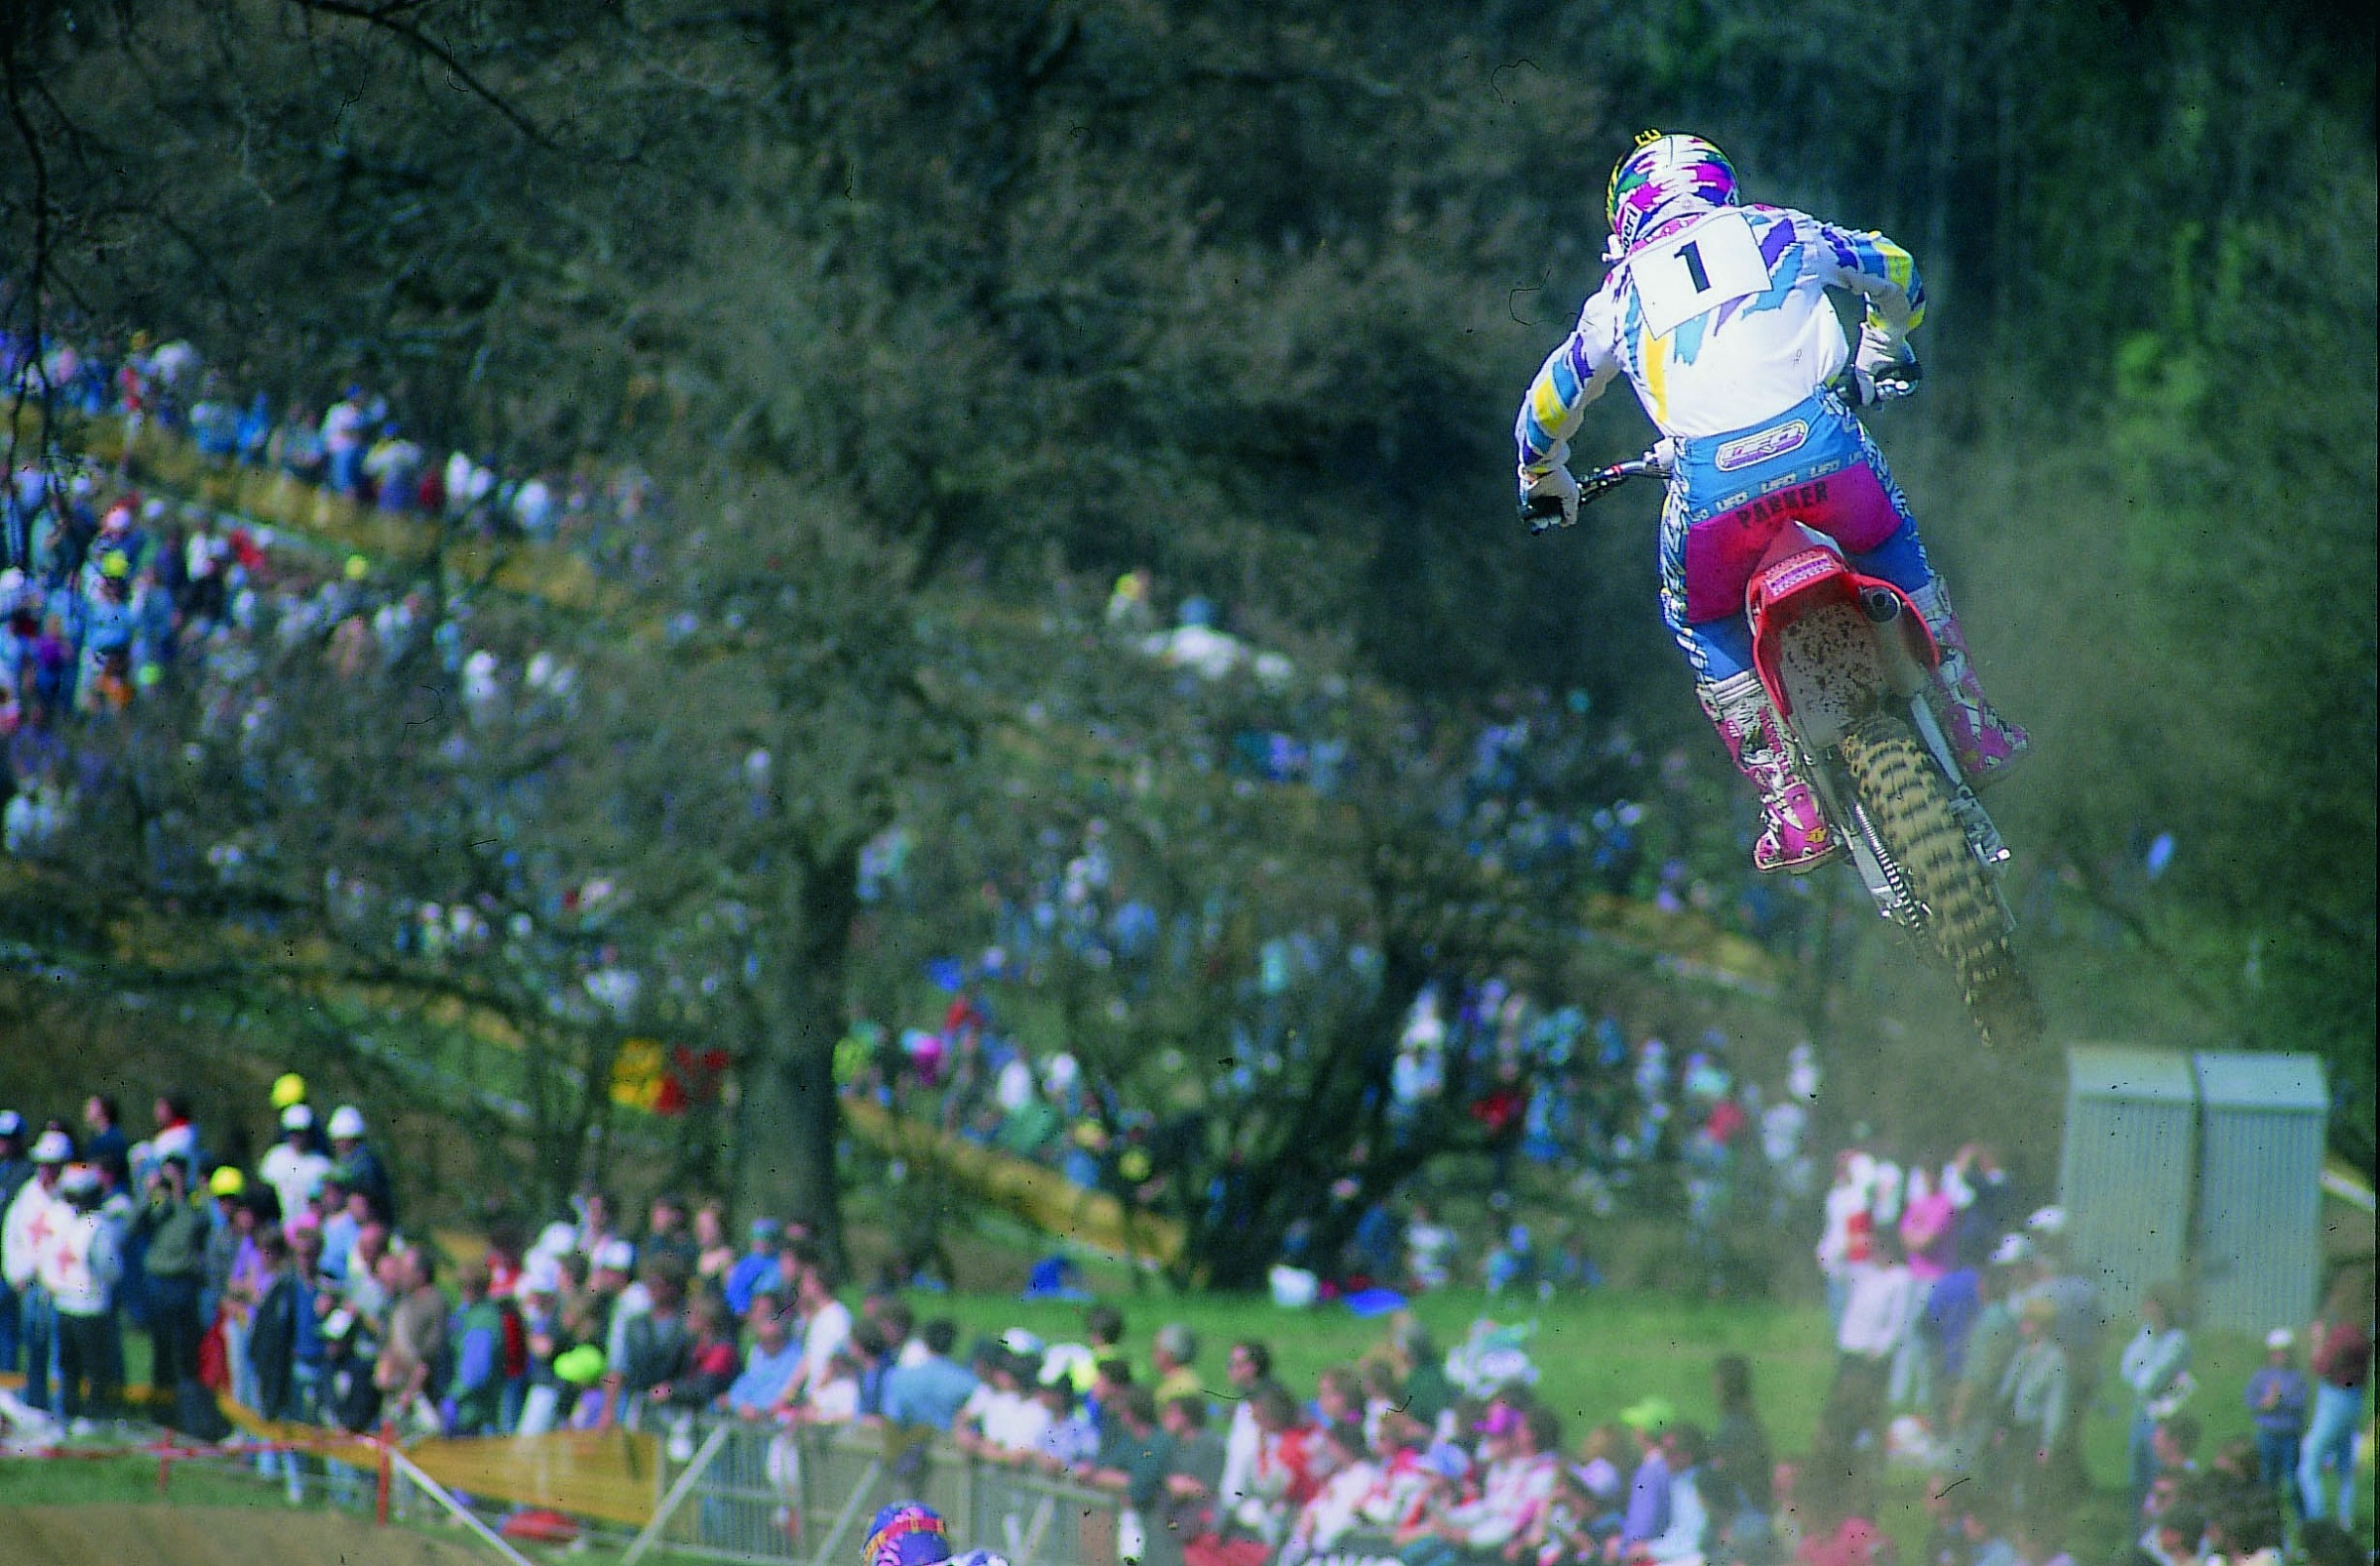 Trampas Parker was one of the only Americans racing in the World Championship before the wave of 1992.